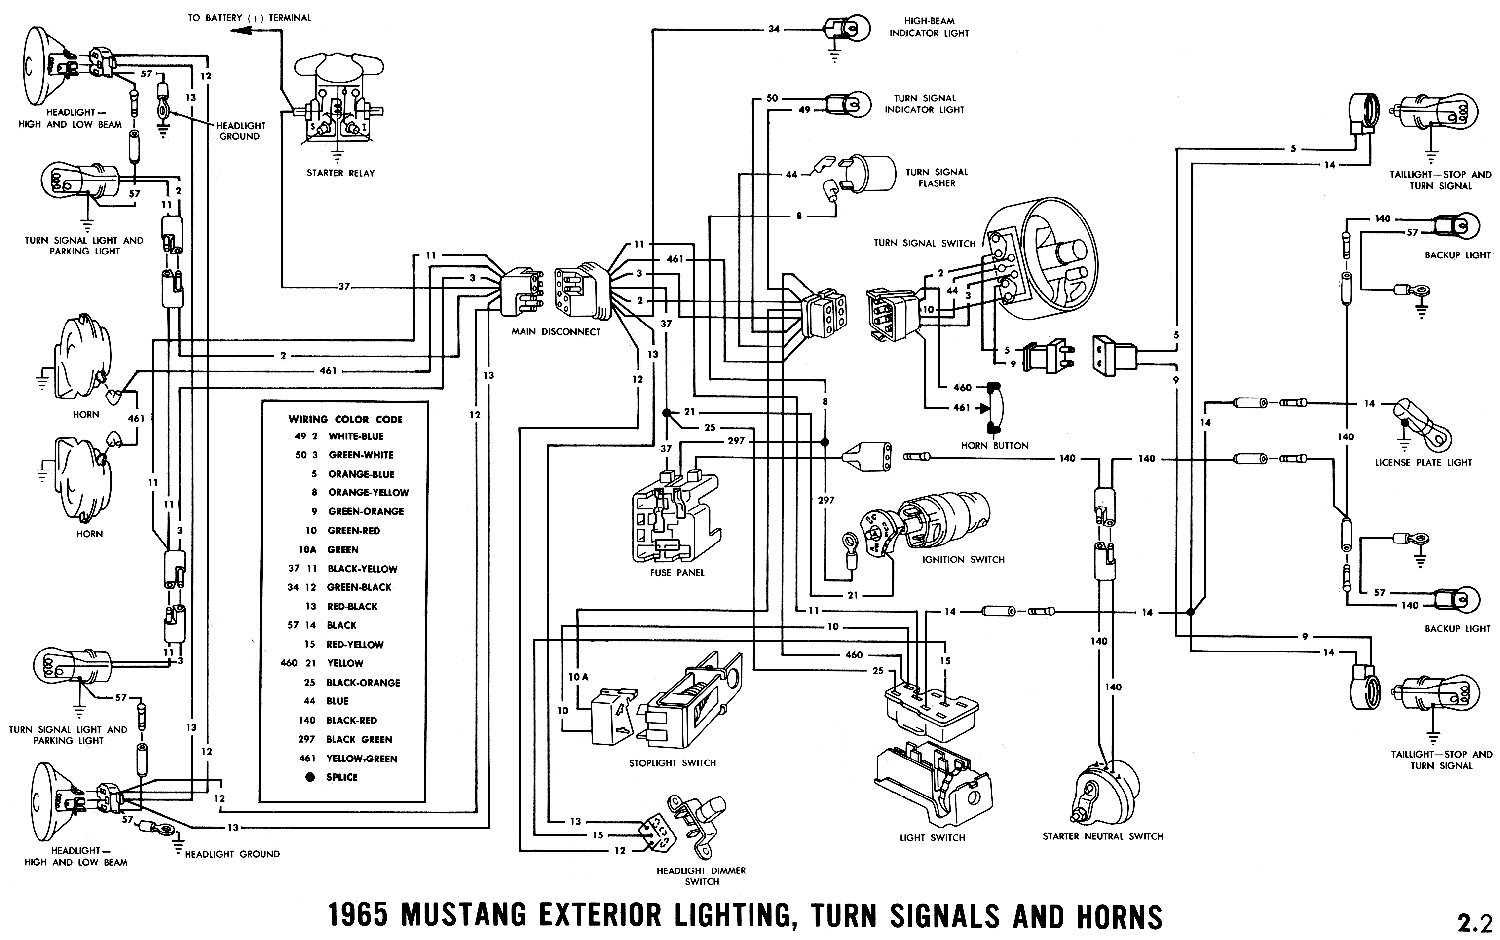 1965 Mustang Wiring Diagrams - Average Joe Restoration - 65 Mustang Wiring Diagram